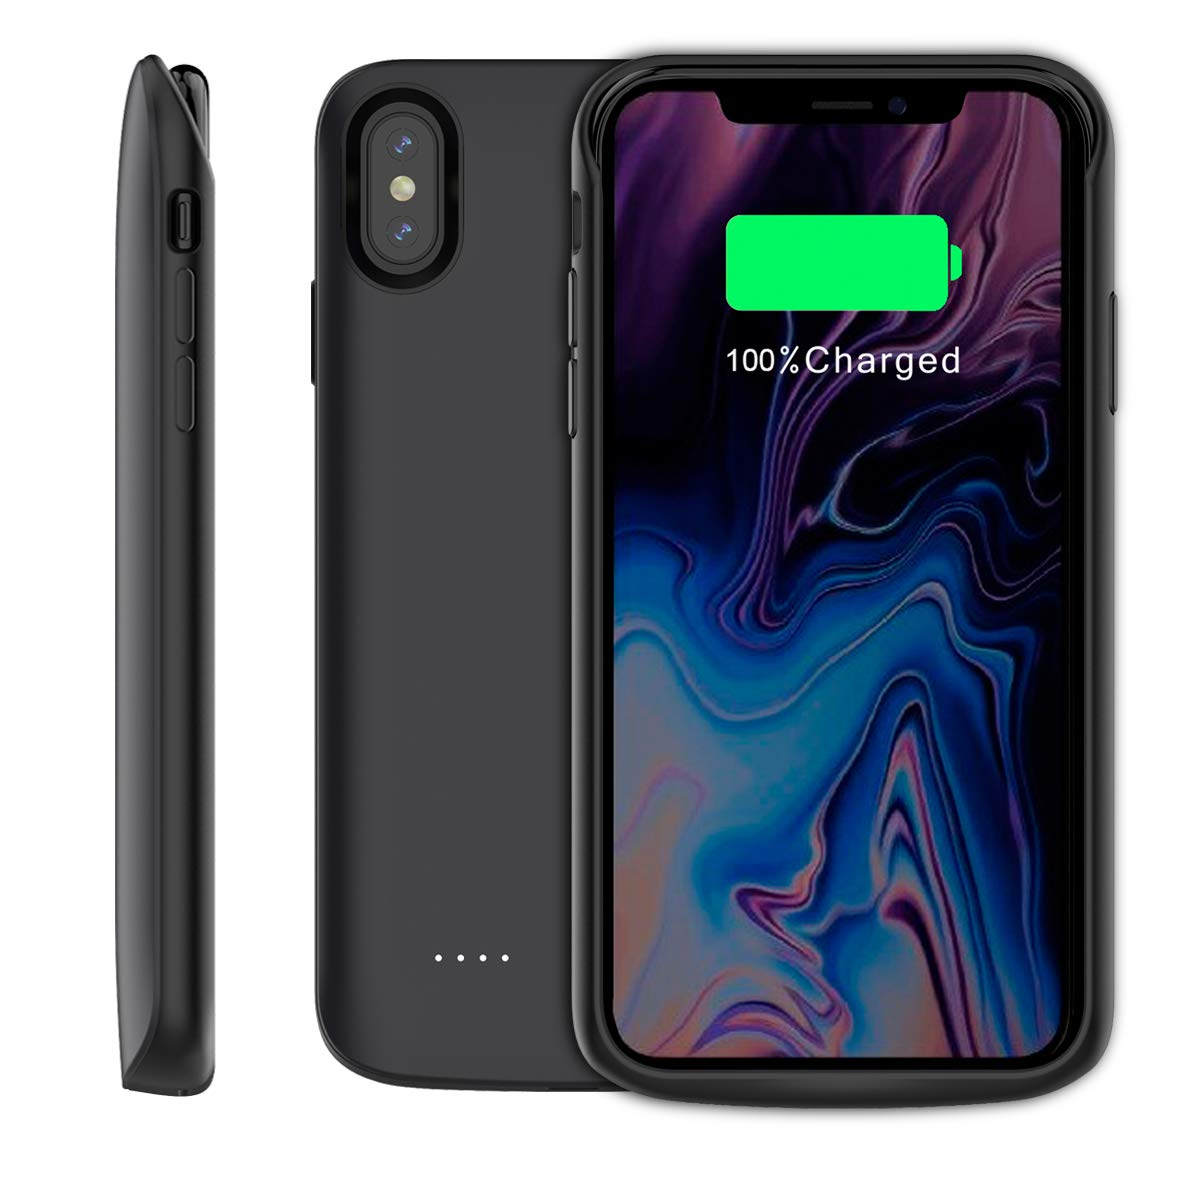 iPhone Xs Max Battery Case 6000mAh, Fusutonus Extended Charger Case Backup Battery Charger Protective Case [Rechargeable Extended Battery Pack] Compatible iPhone Xs Max 6.5 inch 2018 - Black N150-0R-358